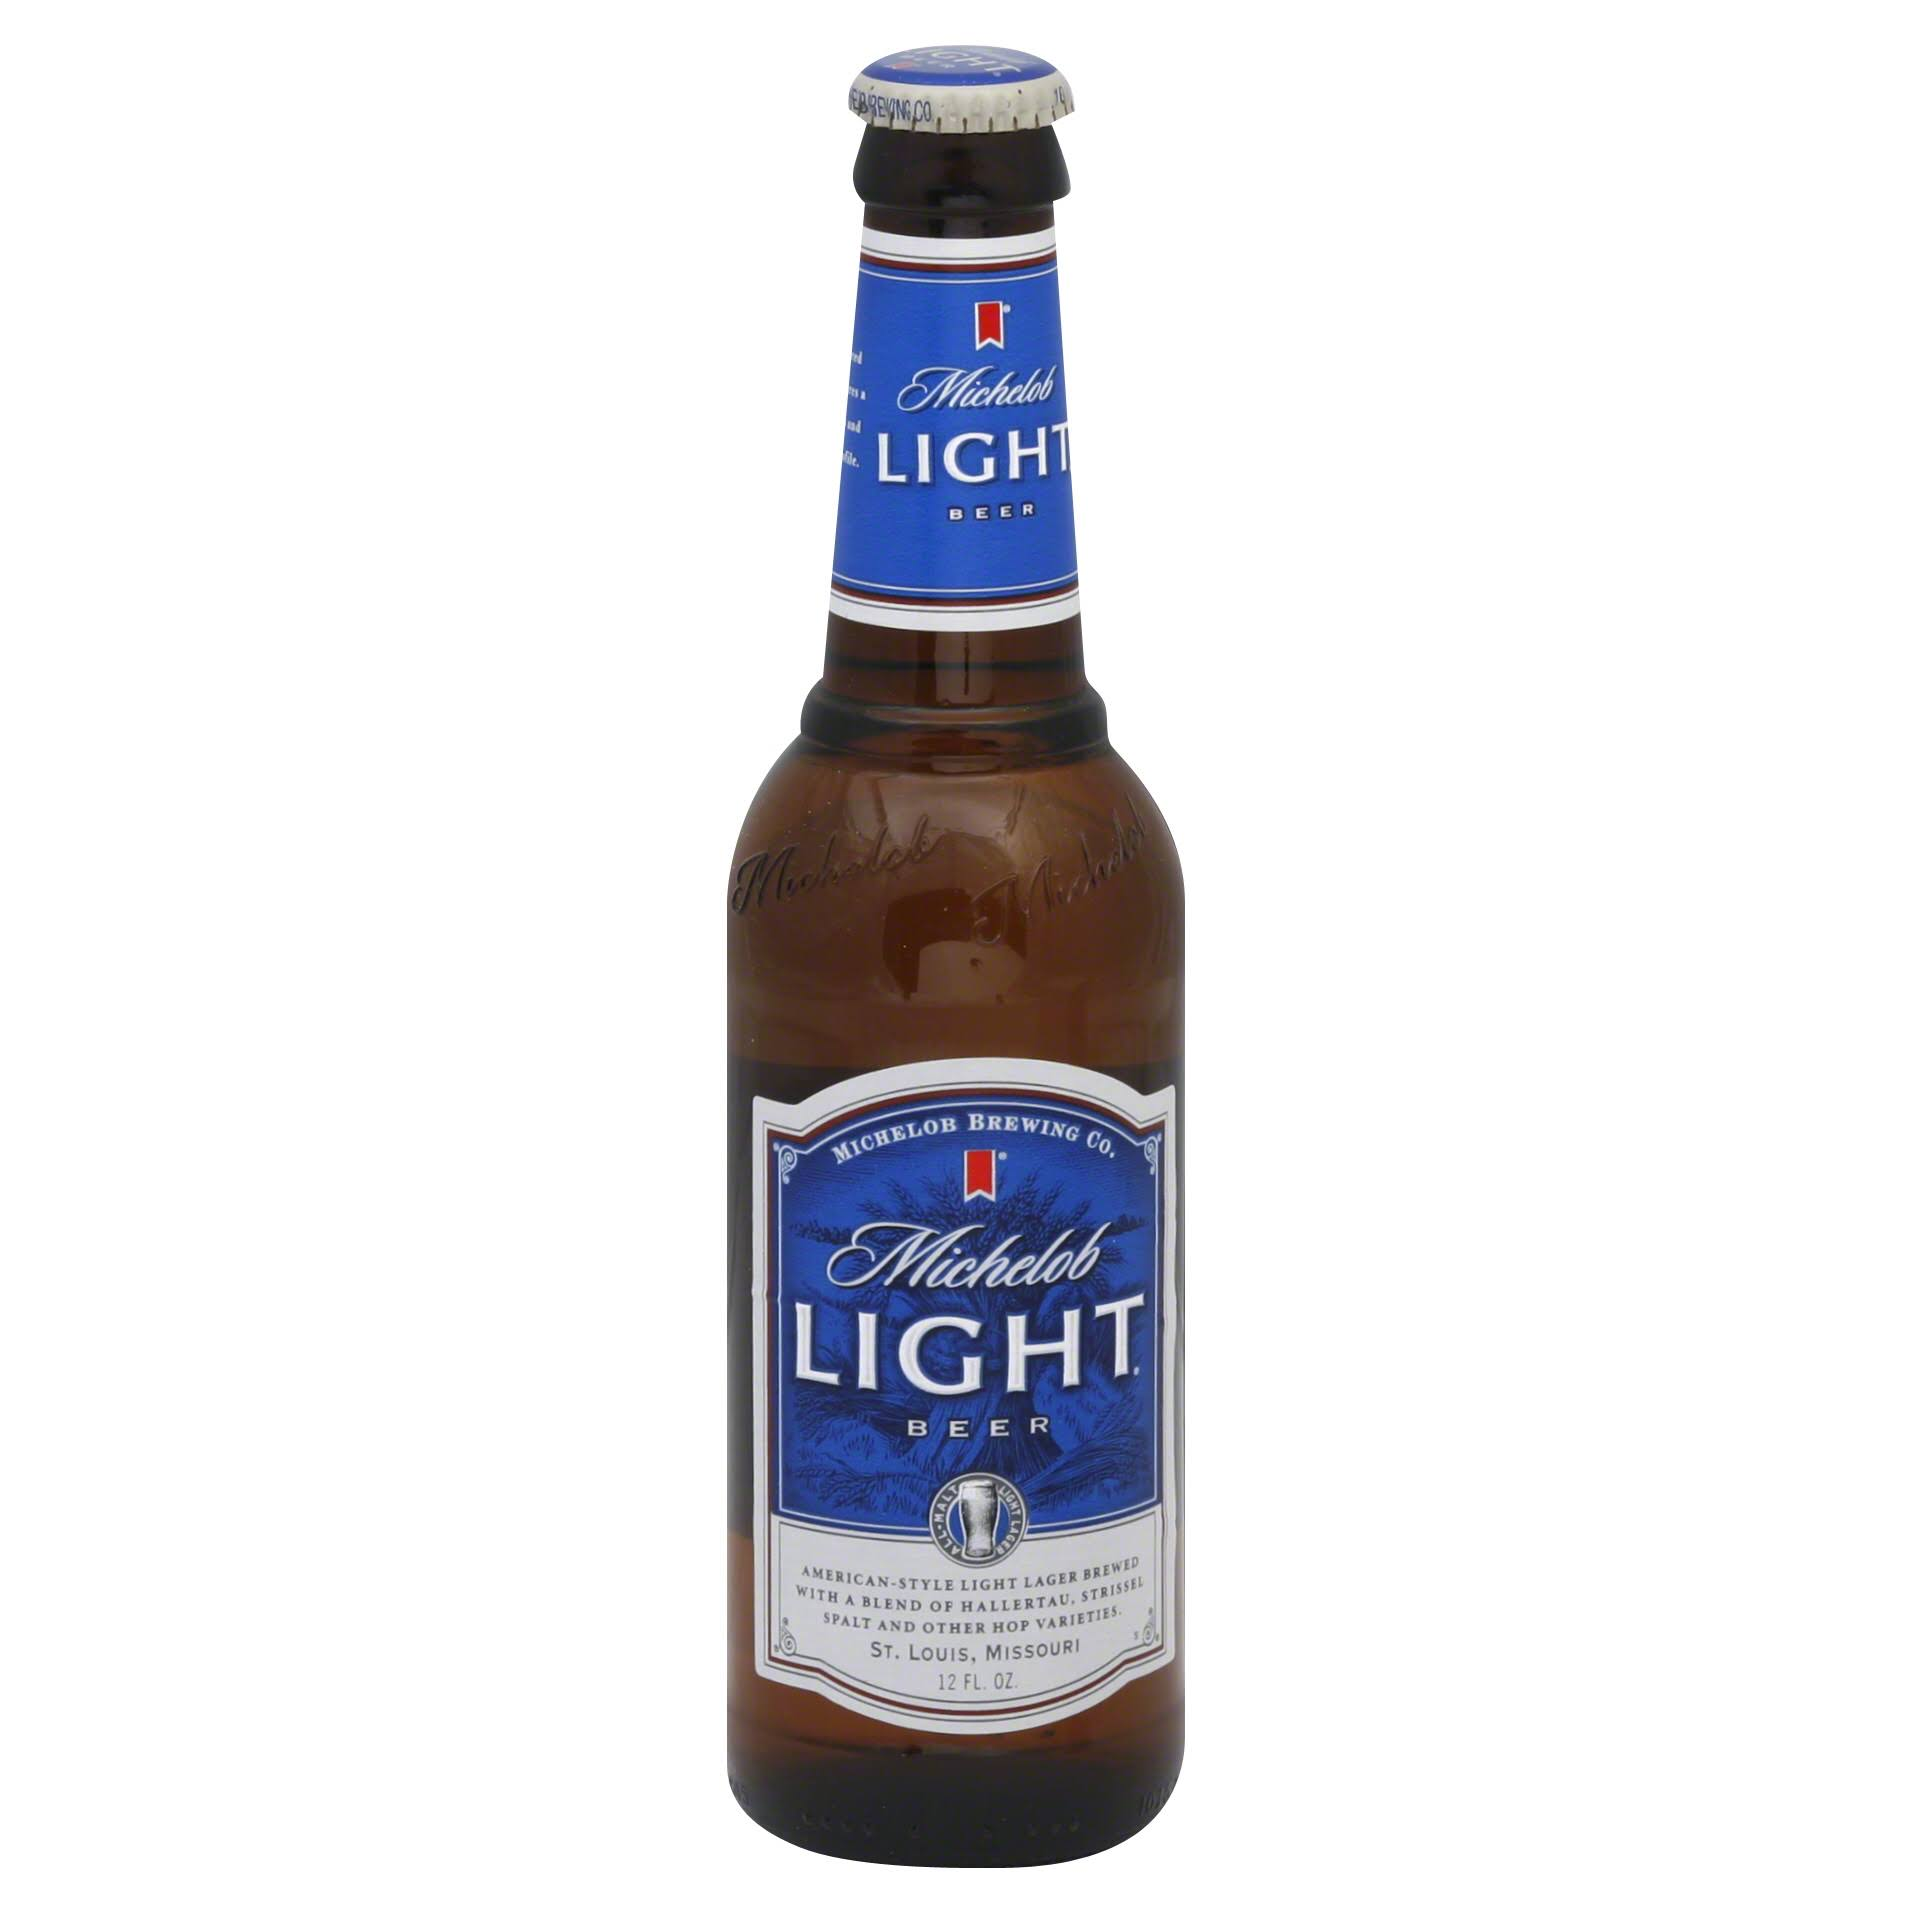 Michelob Light Beer - 12 fl oz